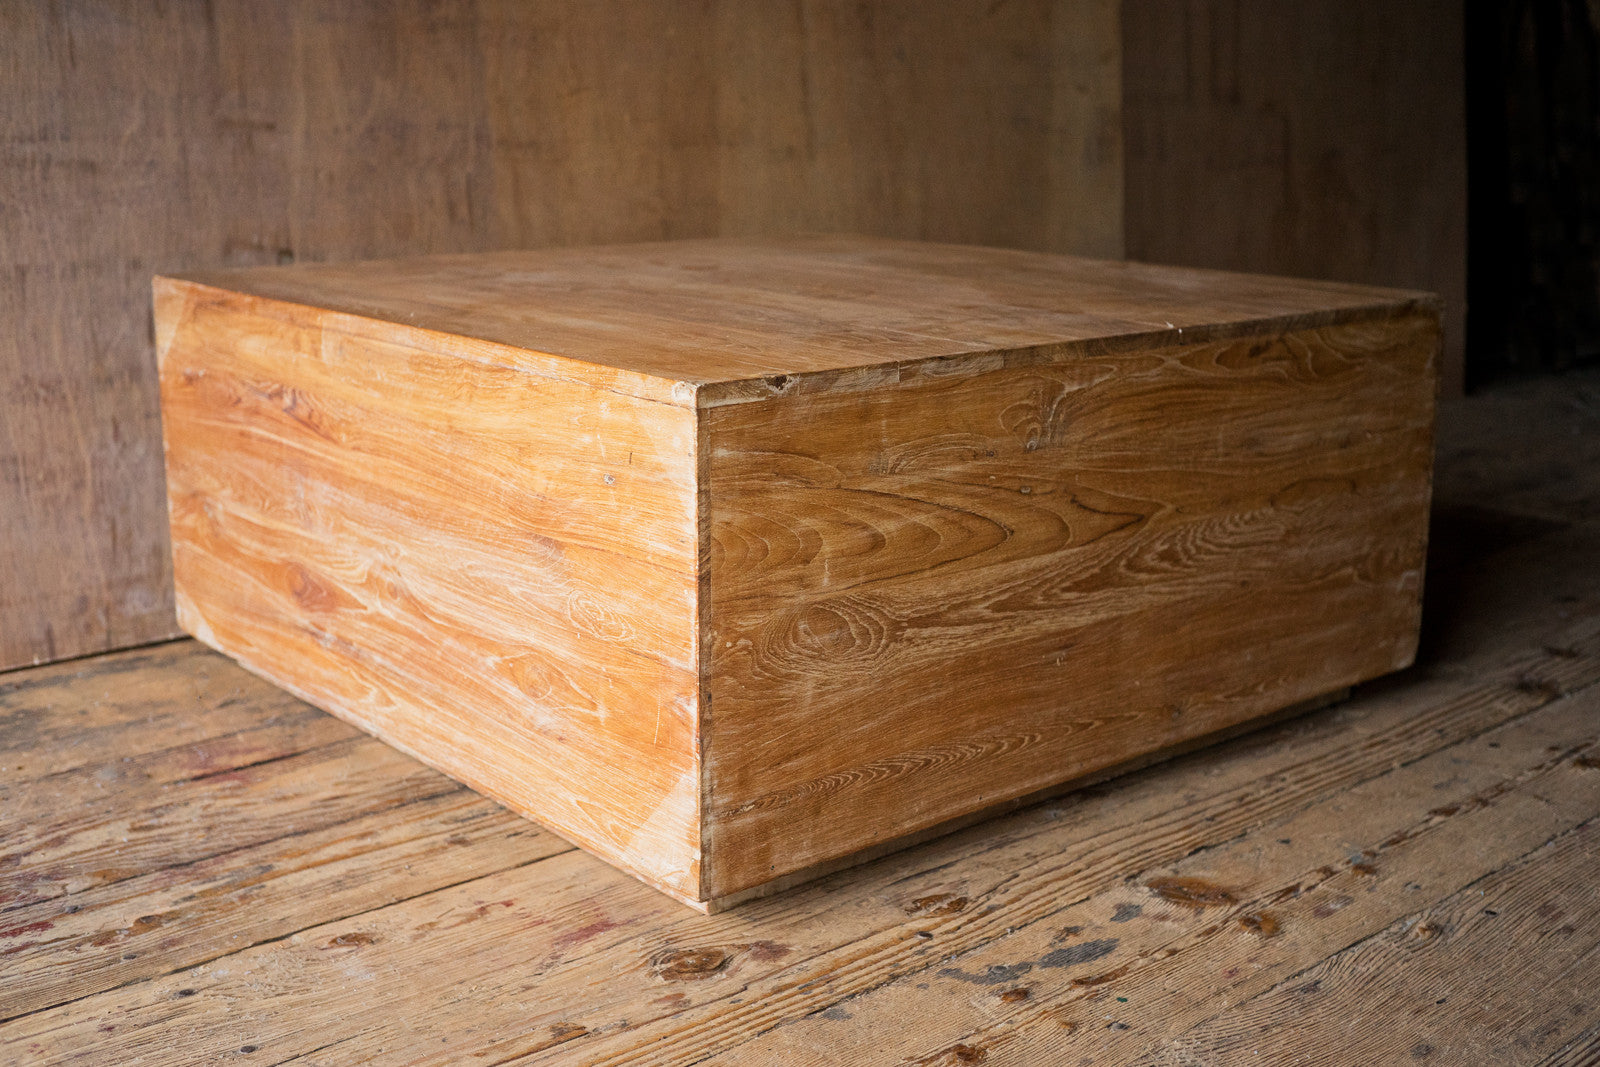 Superb ... Reclaimed Wood Cube Coffee Table   Coffee Tables   Shop Nectar   3 ...